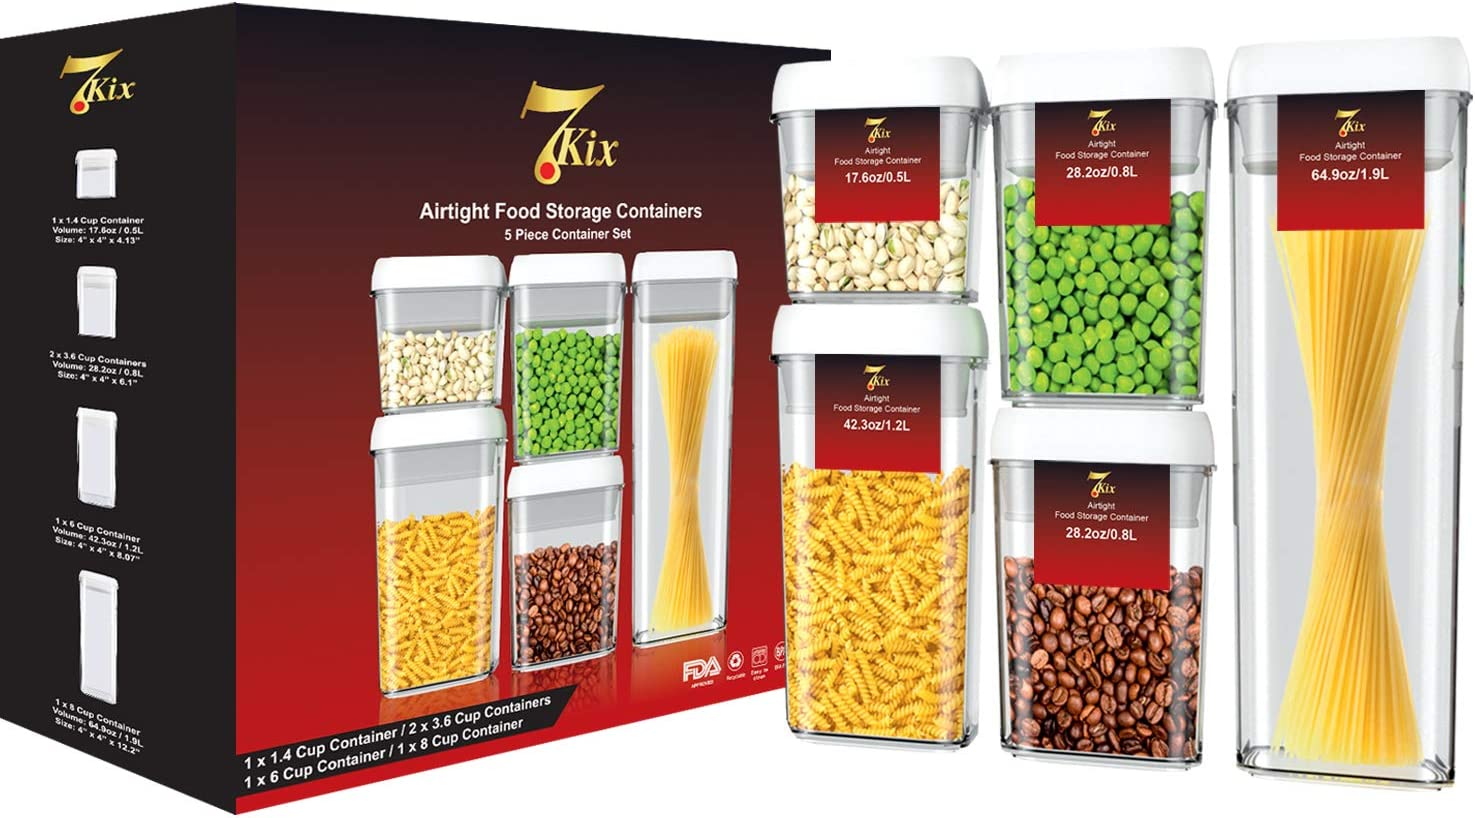 7Kix Airtight Food Storage Containers 5 Piece Set - BPA Free - Durable Clear Acrylic Container with Innovative Air-Tight White Lid - Leak Proof - Stackable - Keeps Pantry & Kitchen Organized